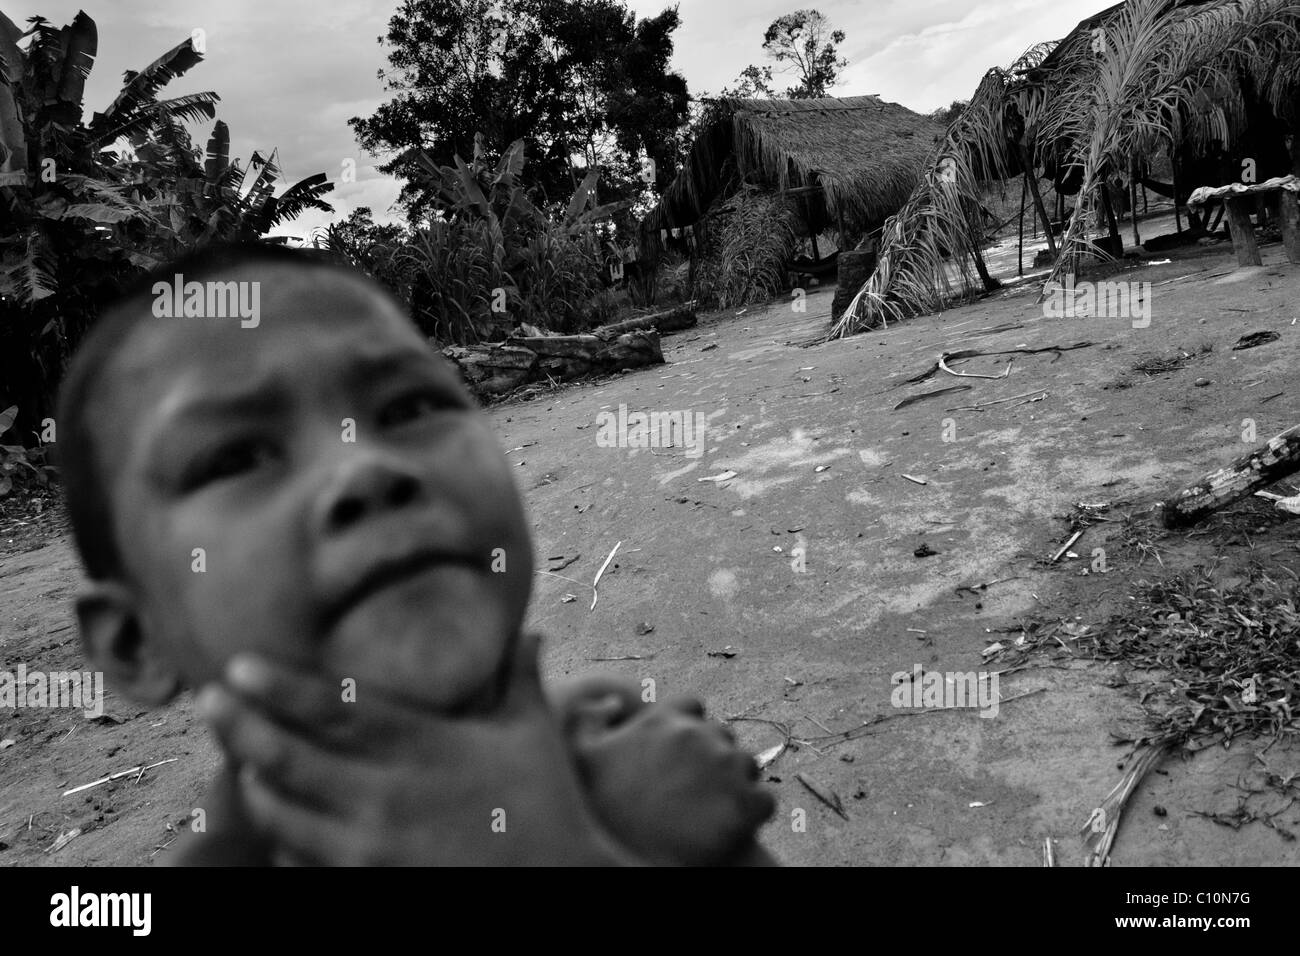 A young Nukak boy stands in front of the shacks in a refugee settlement close to San Jose del Guaviare, Colombia. - Stock Image